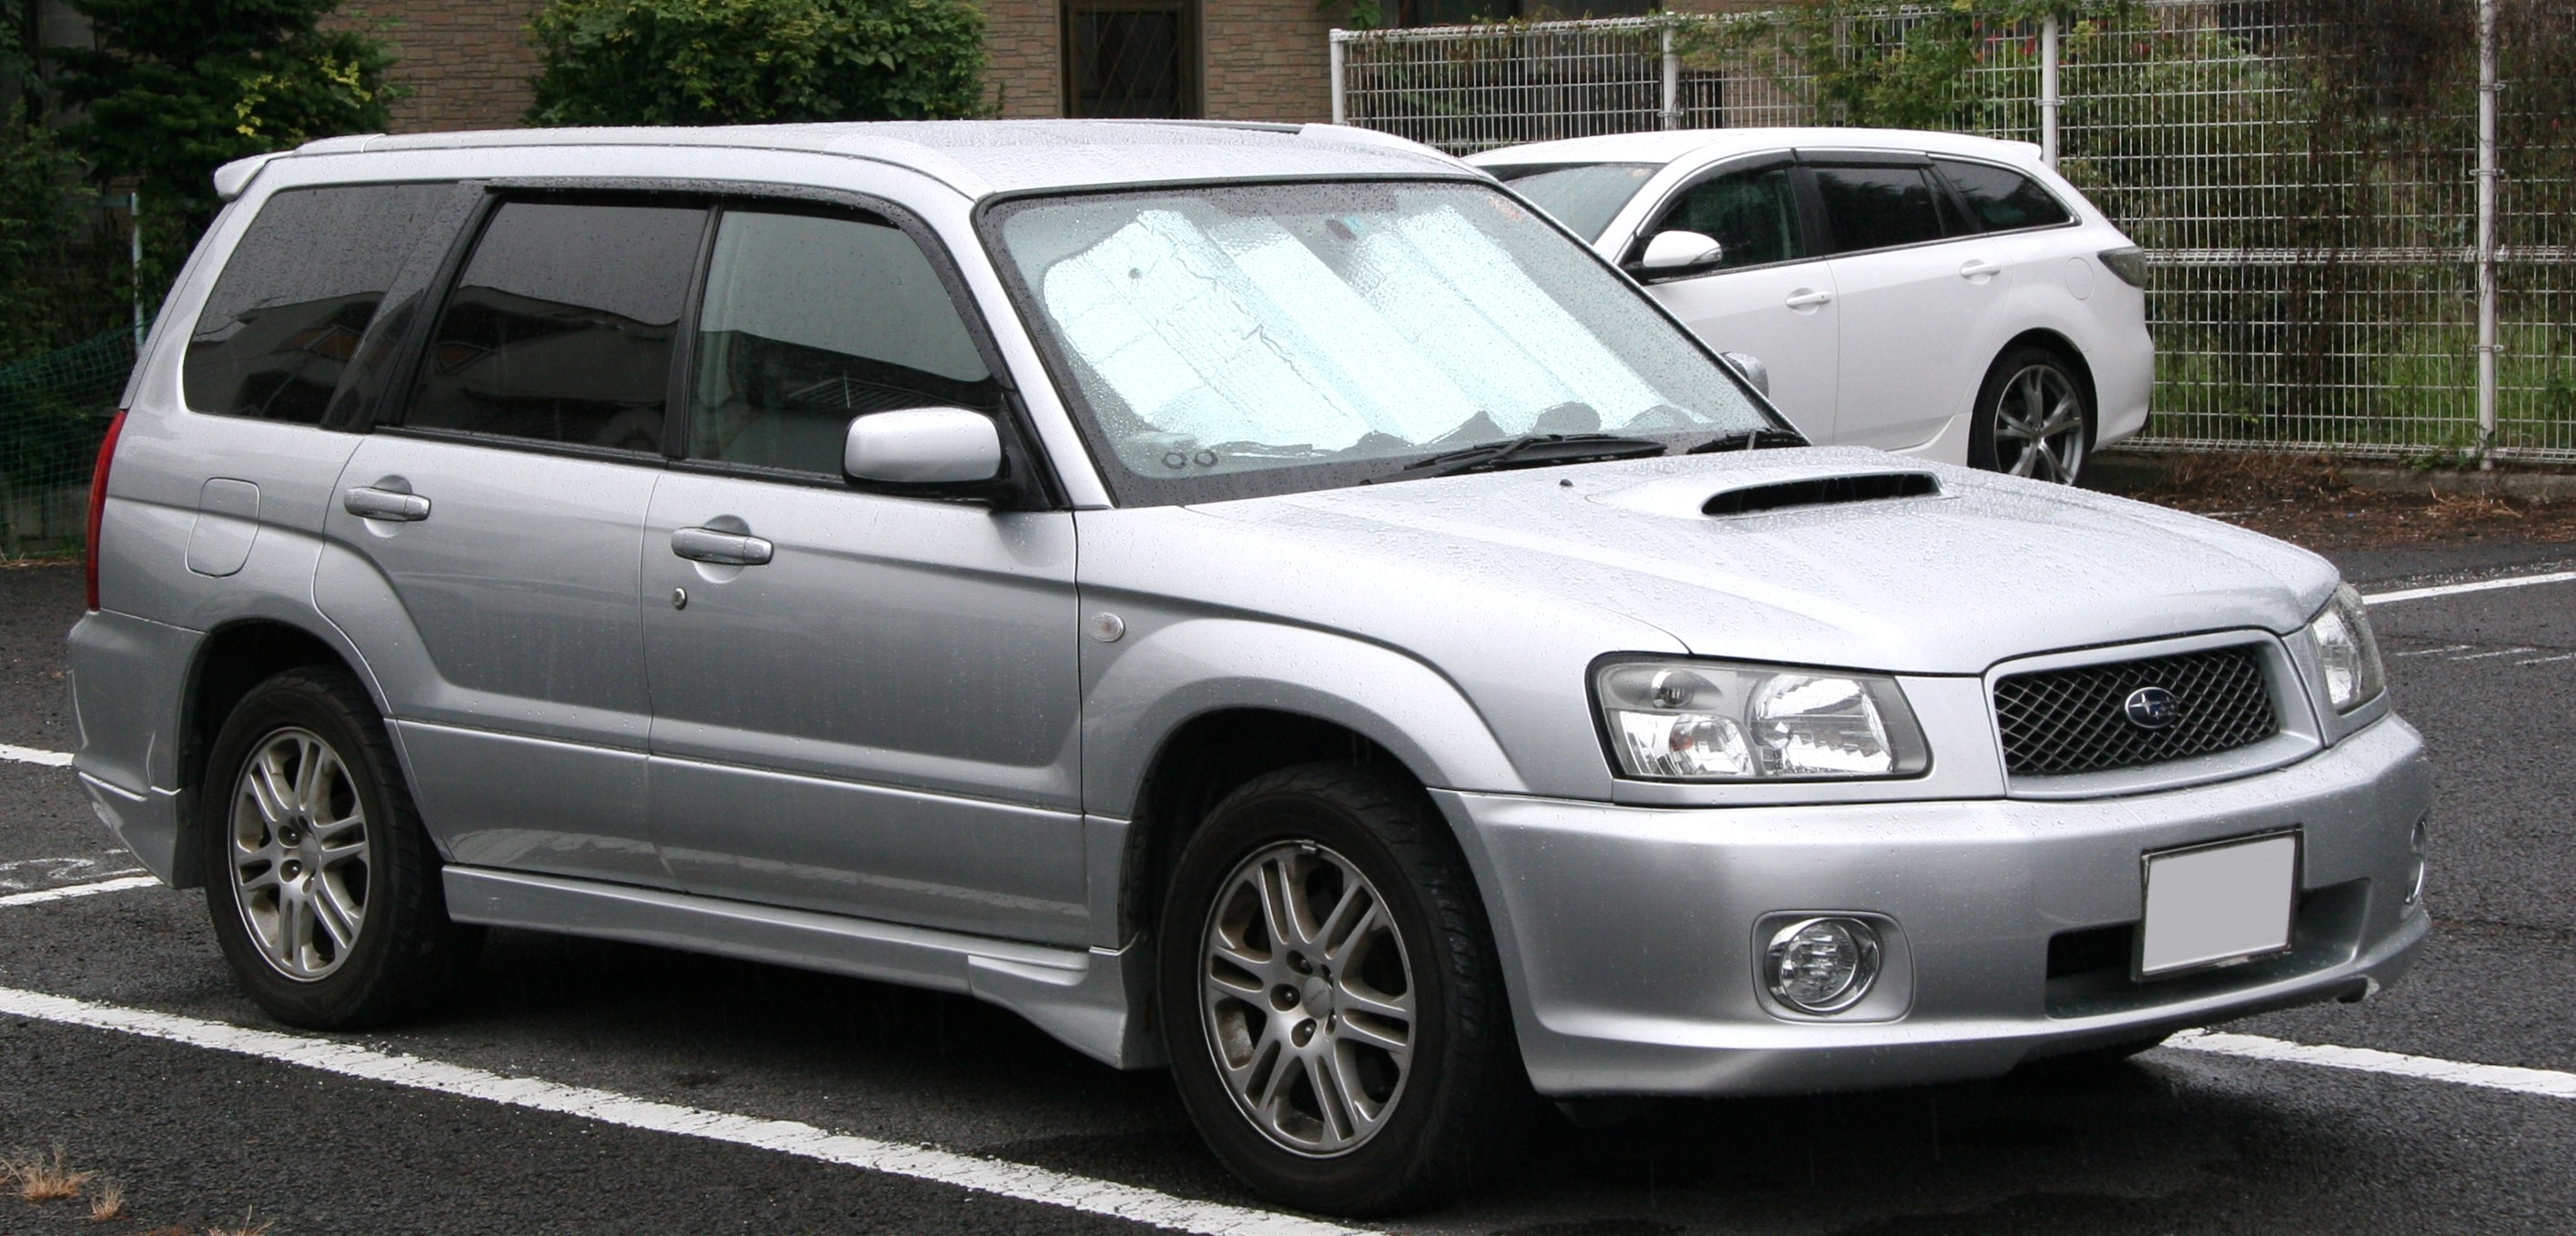 Grill subaru forester owners forum for Subaru forester paint job cost